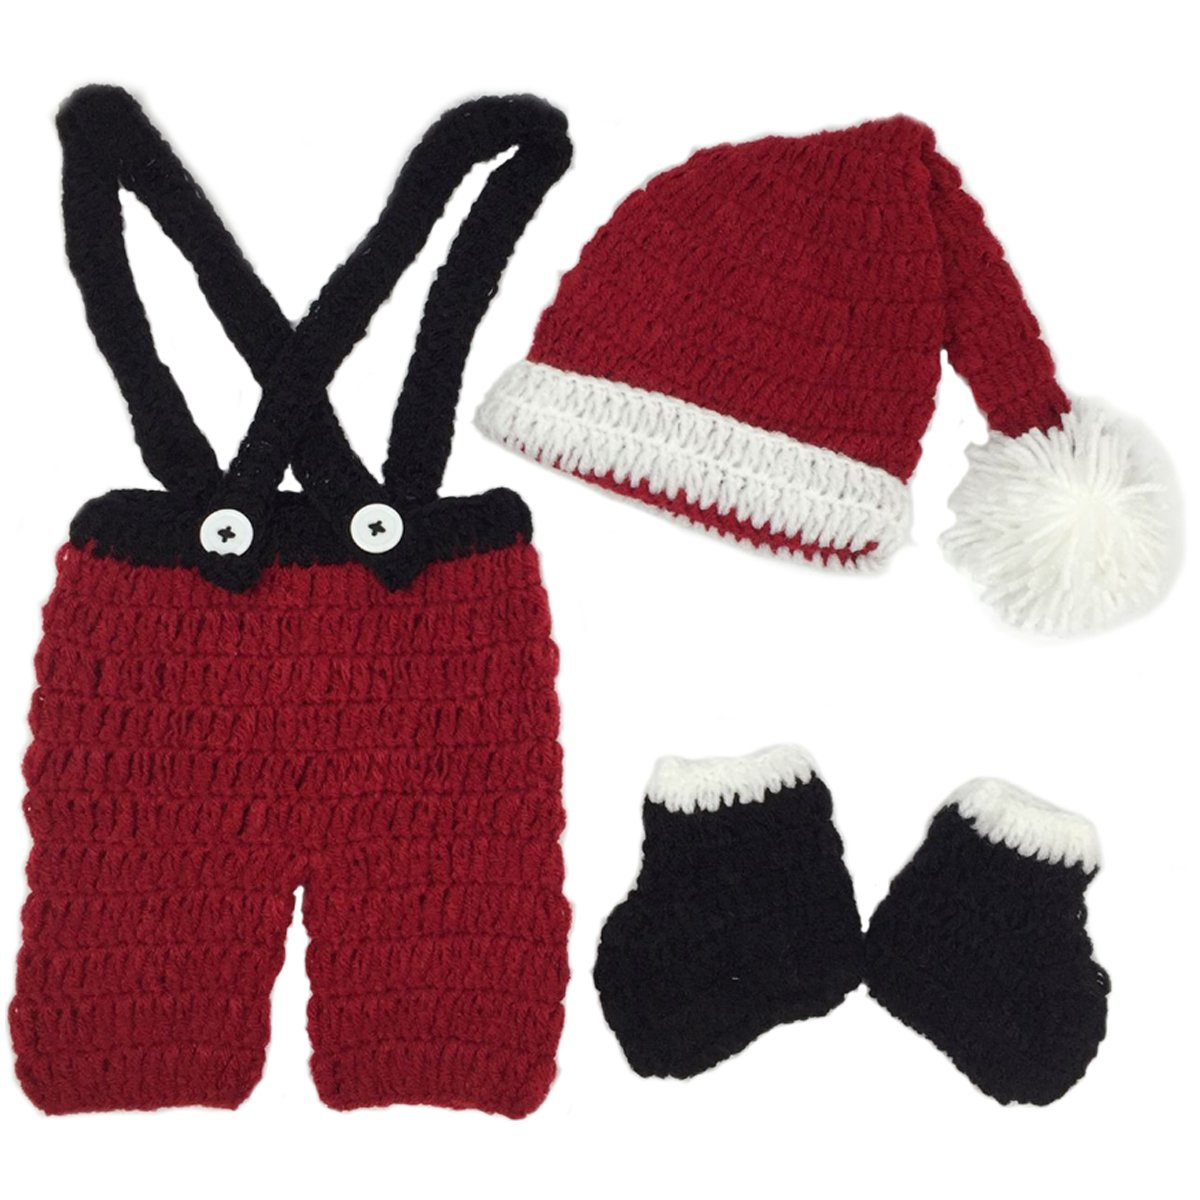 Jastore Infant Newborn Costume Photography Prop Santa Claus Knitted Outfit